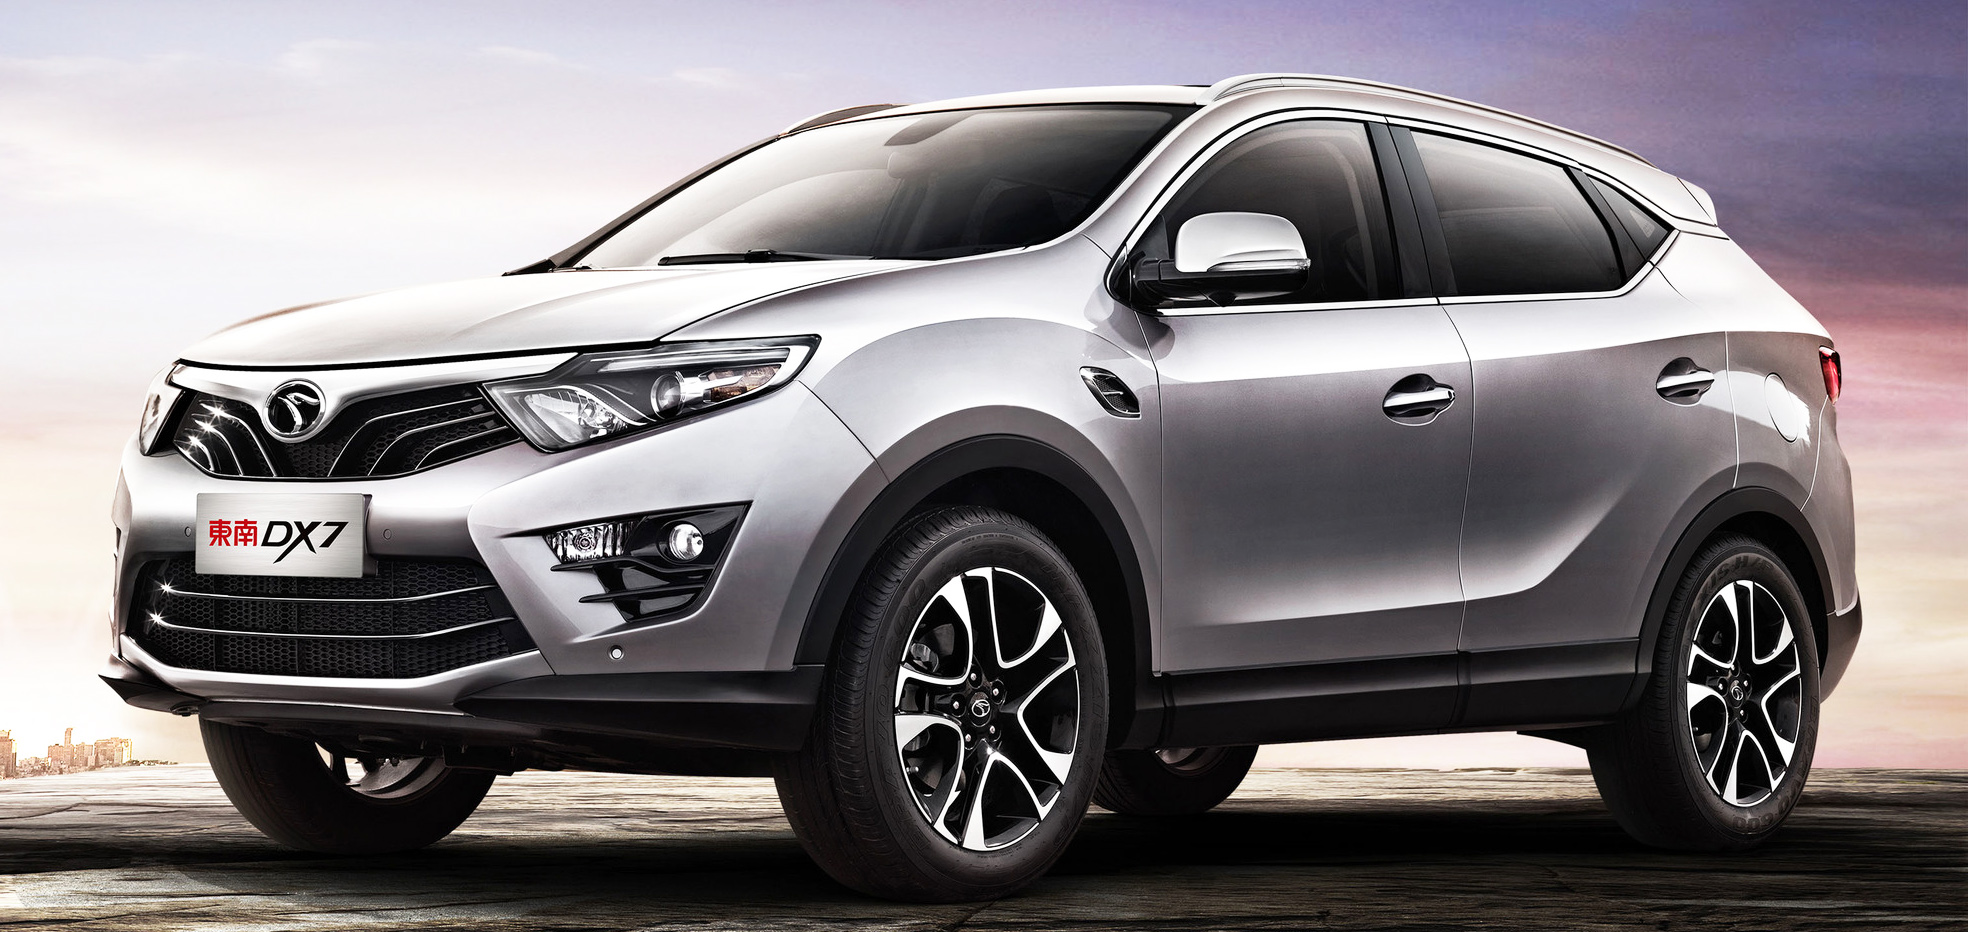 Suv >> South East Motor DX7 SUV – designed by Pininfarina Paul Tan - Image 333219